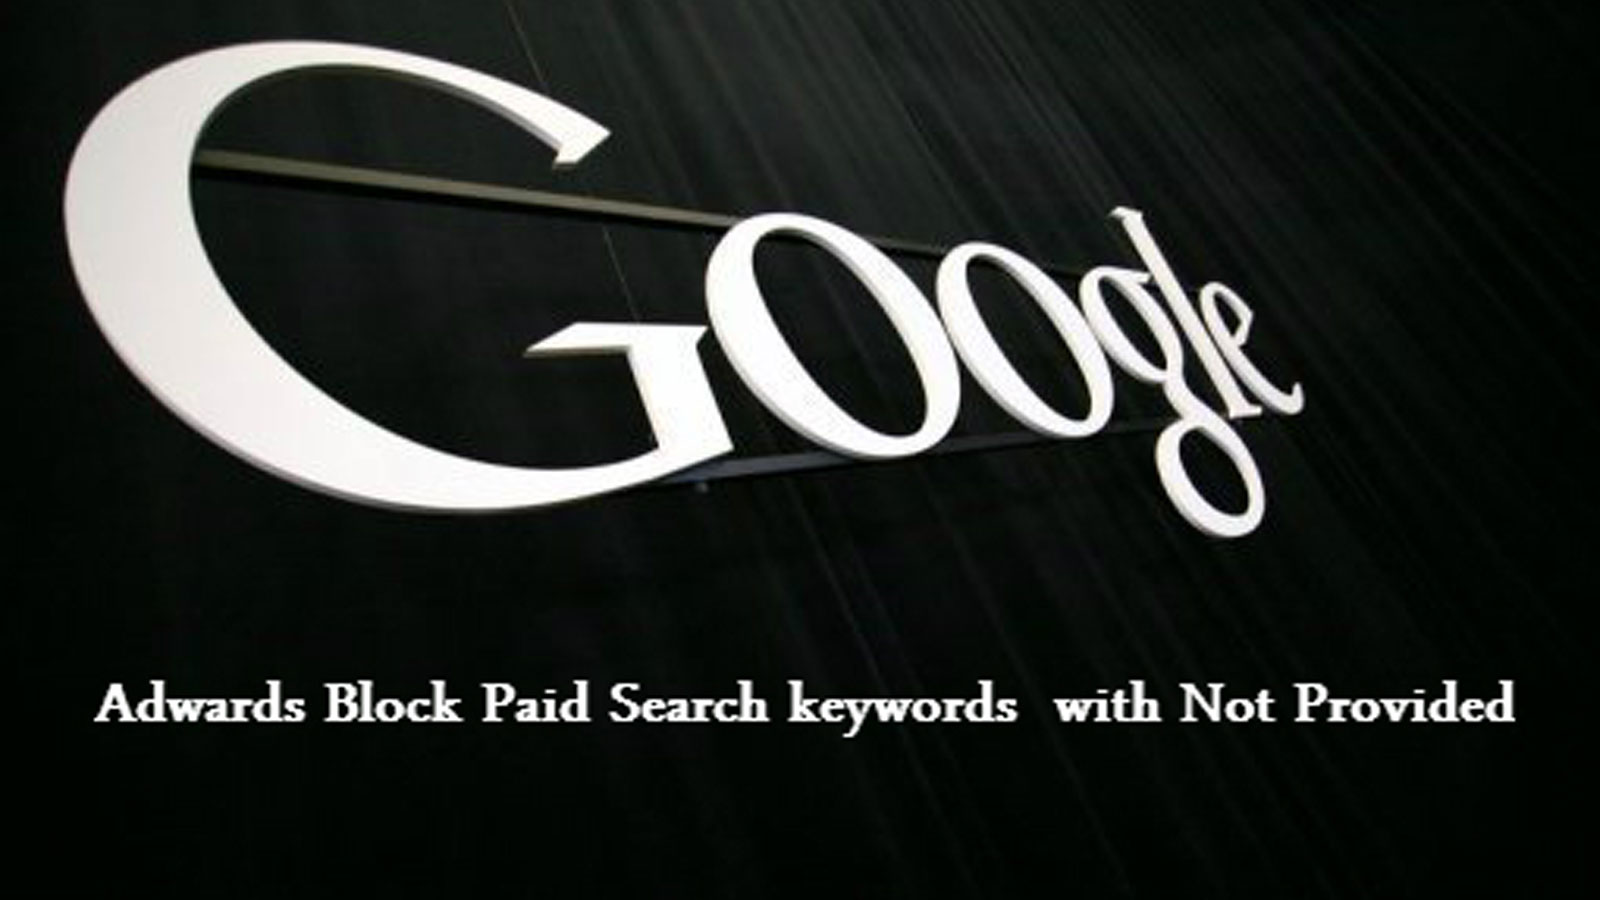 Google To Block Paid Search Keyword Data With Not Provided